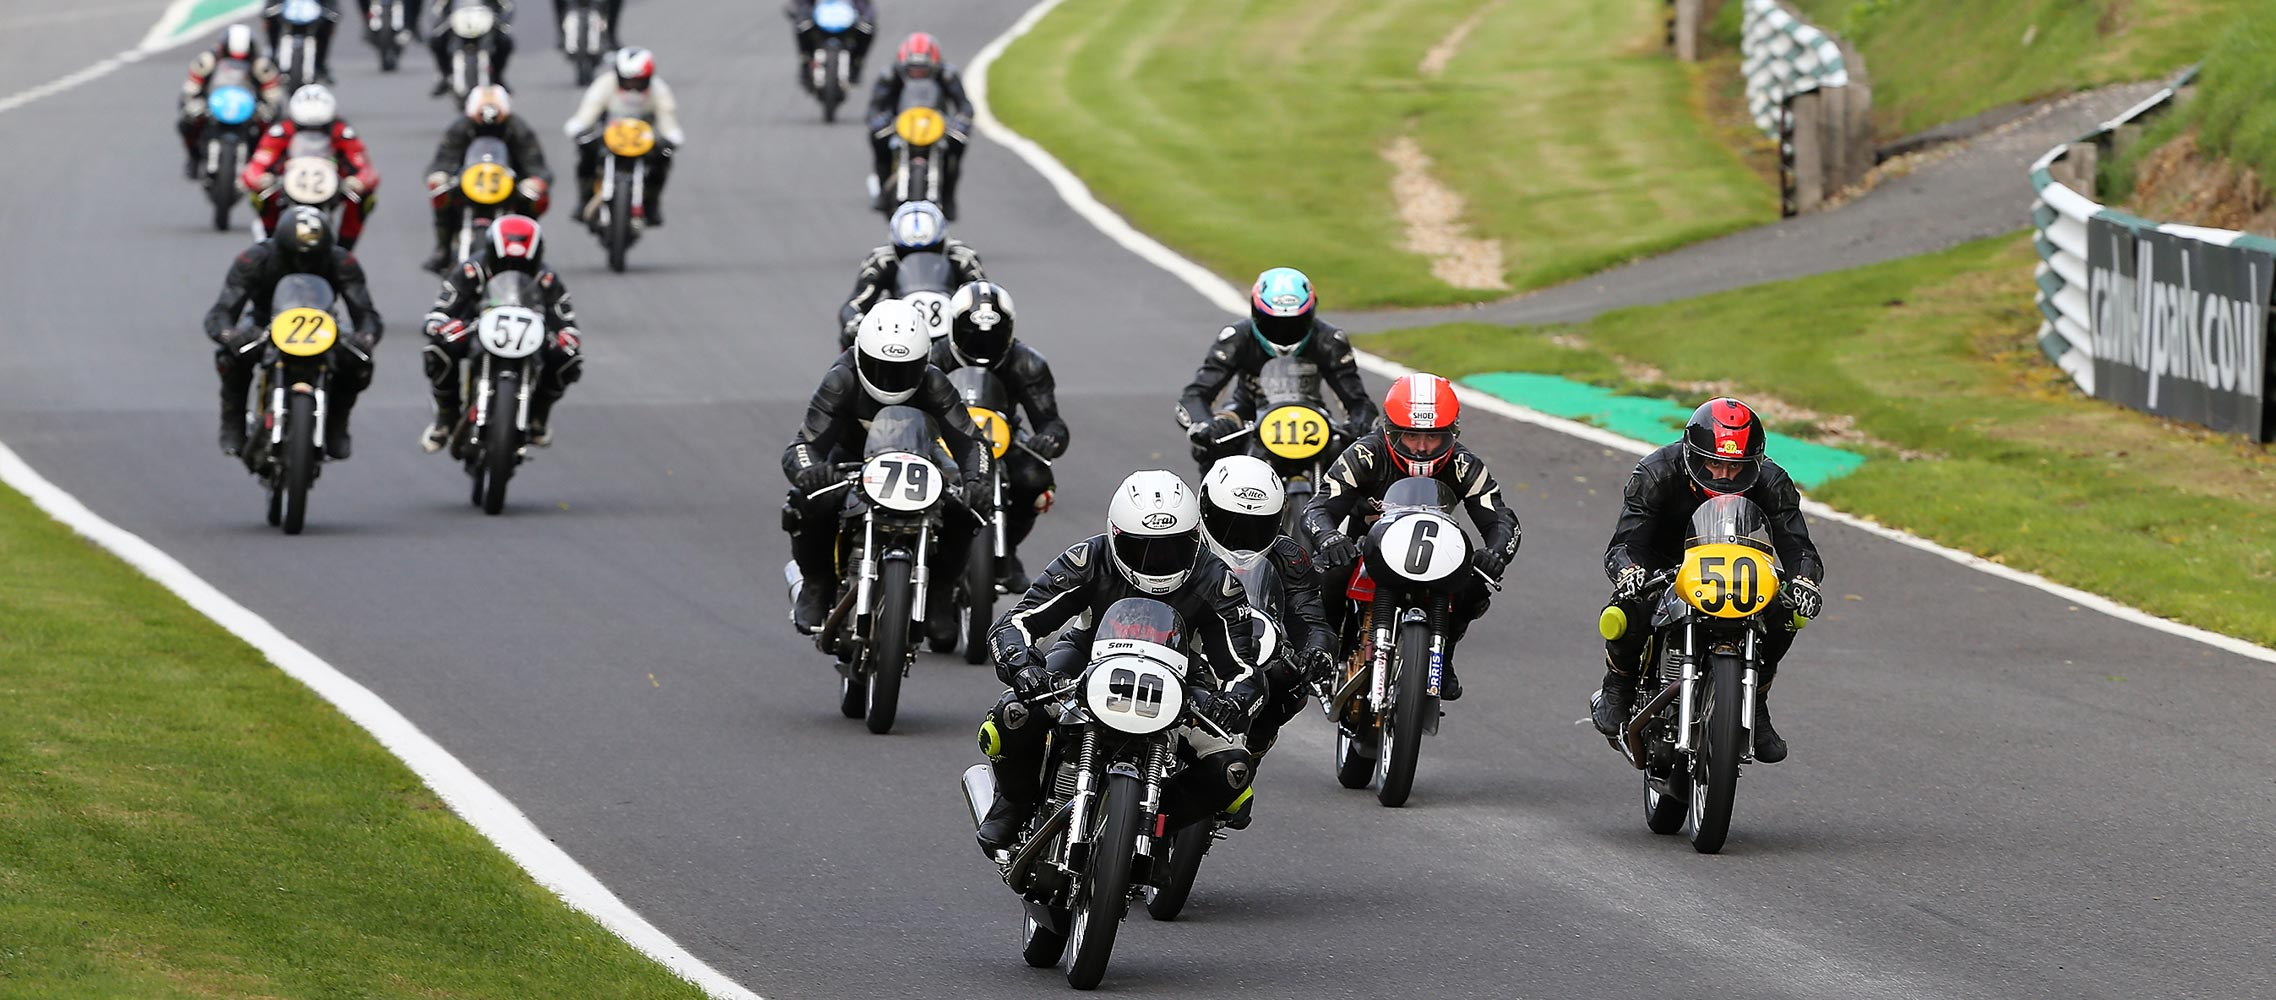 Classic bike racing with The Lansdowne from Cadwell Park in 2018